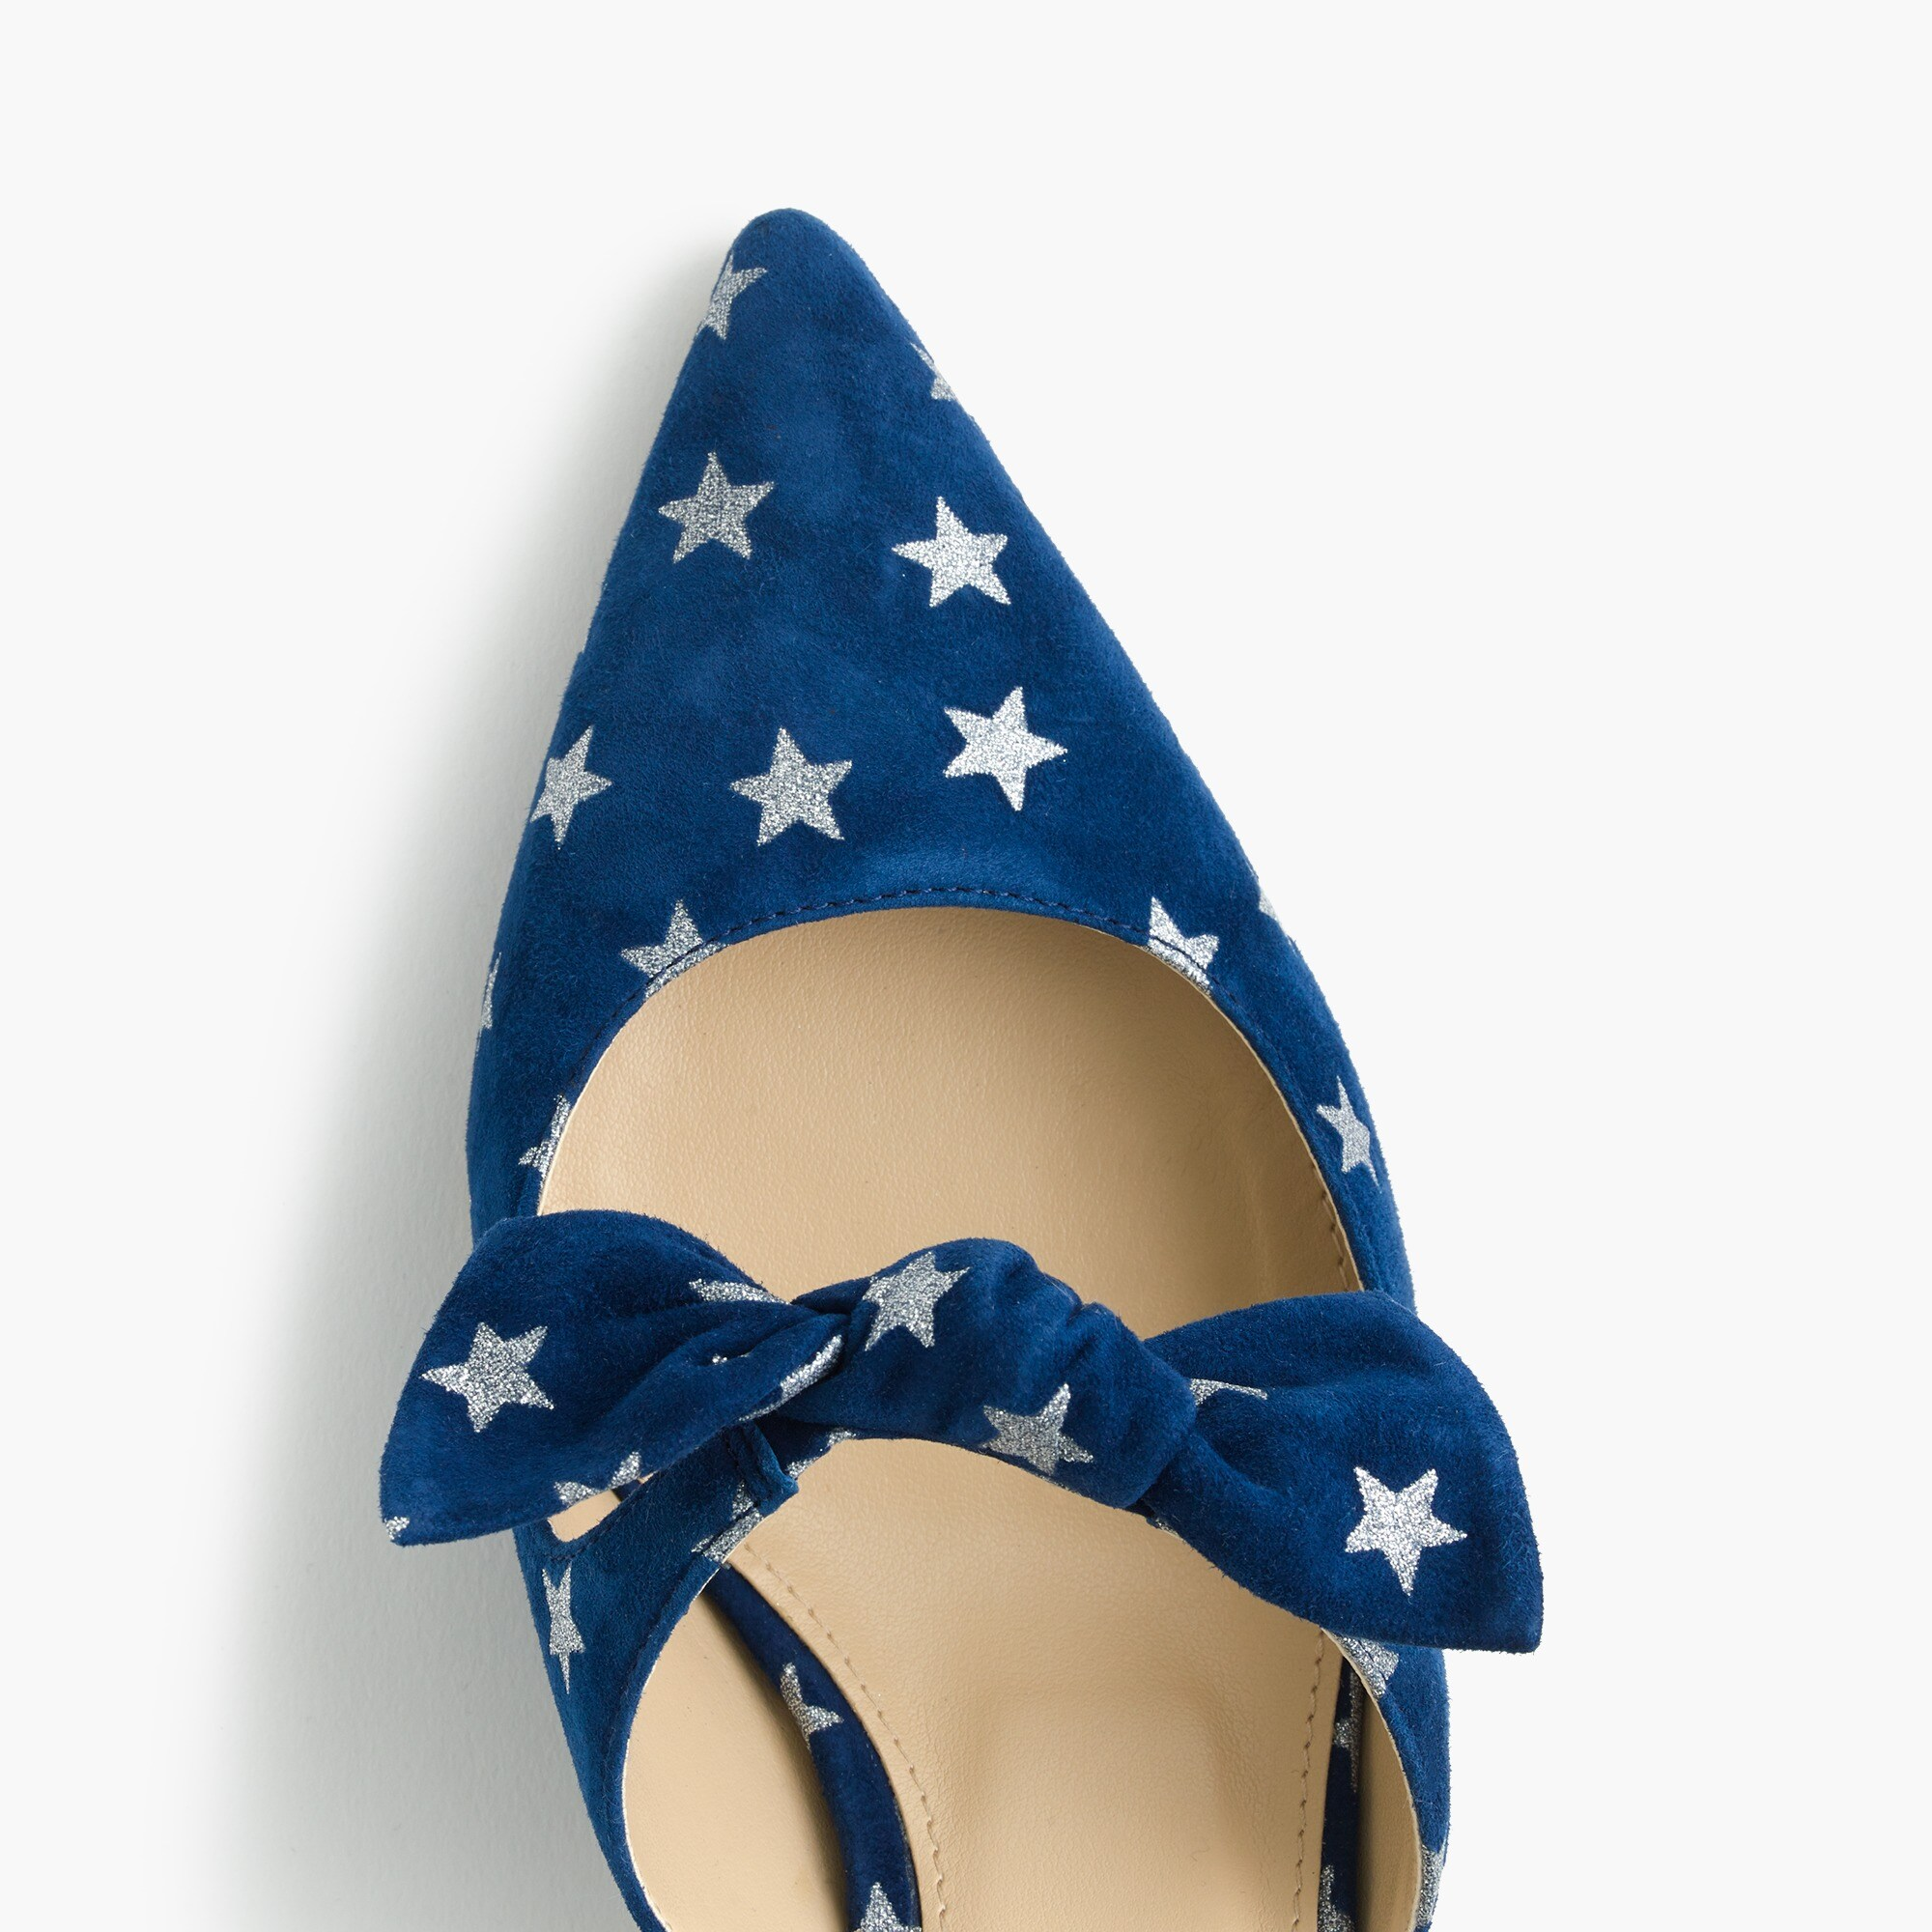 Image 1 for Sophia mules (55mm) in starry suede